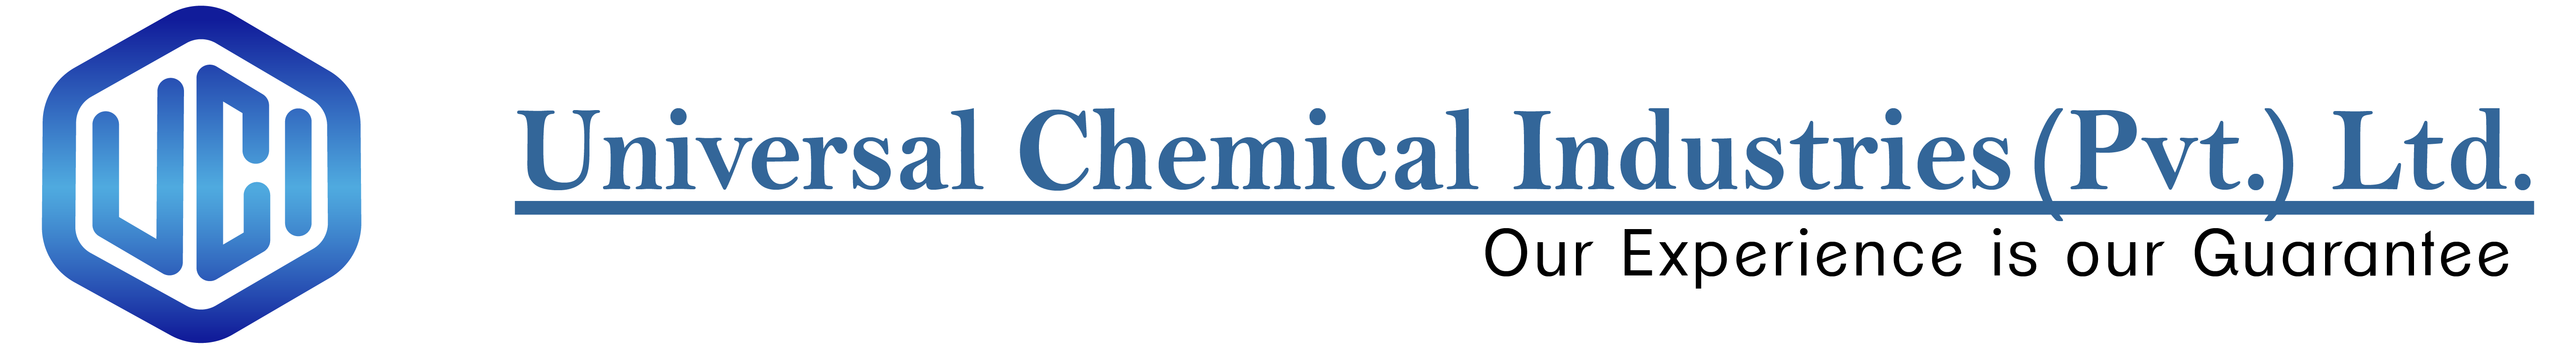 Universal Chemaical Industries Pvt Ltd